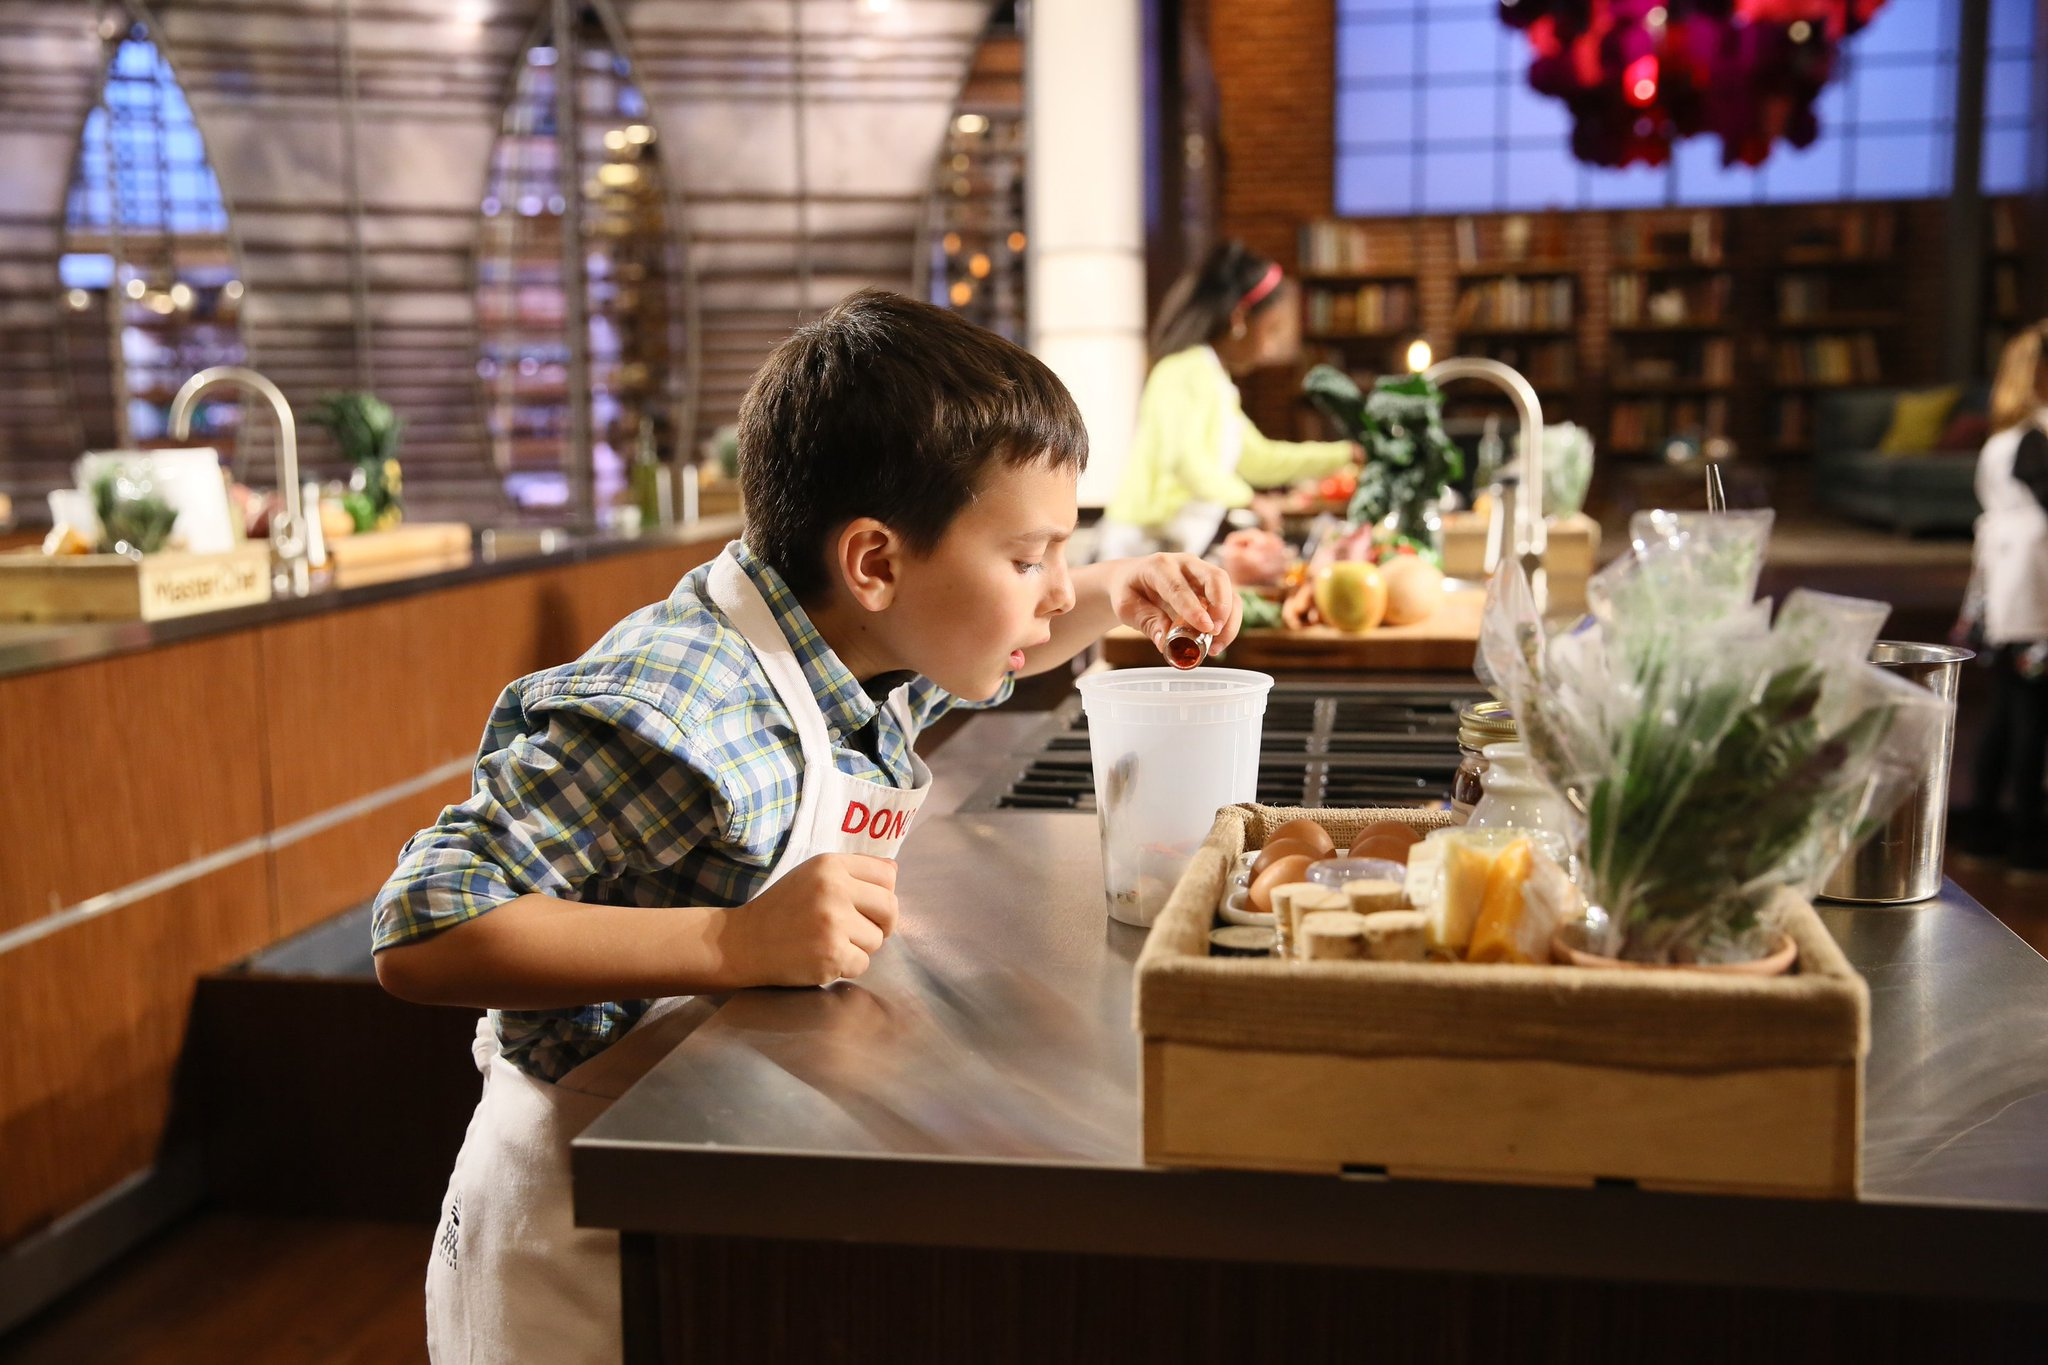 RT @MasterChefJrFOX: Time to focus, West Coast! #MasterChefJunior is hot out of the oven on @FOXTV. 🔥 https://t.co/tS509l9n8x